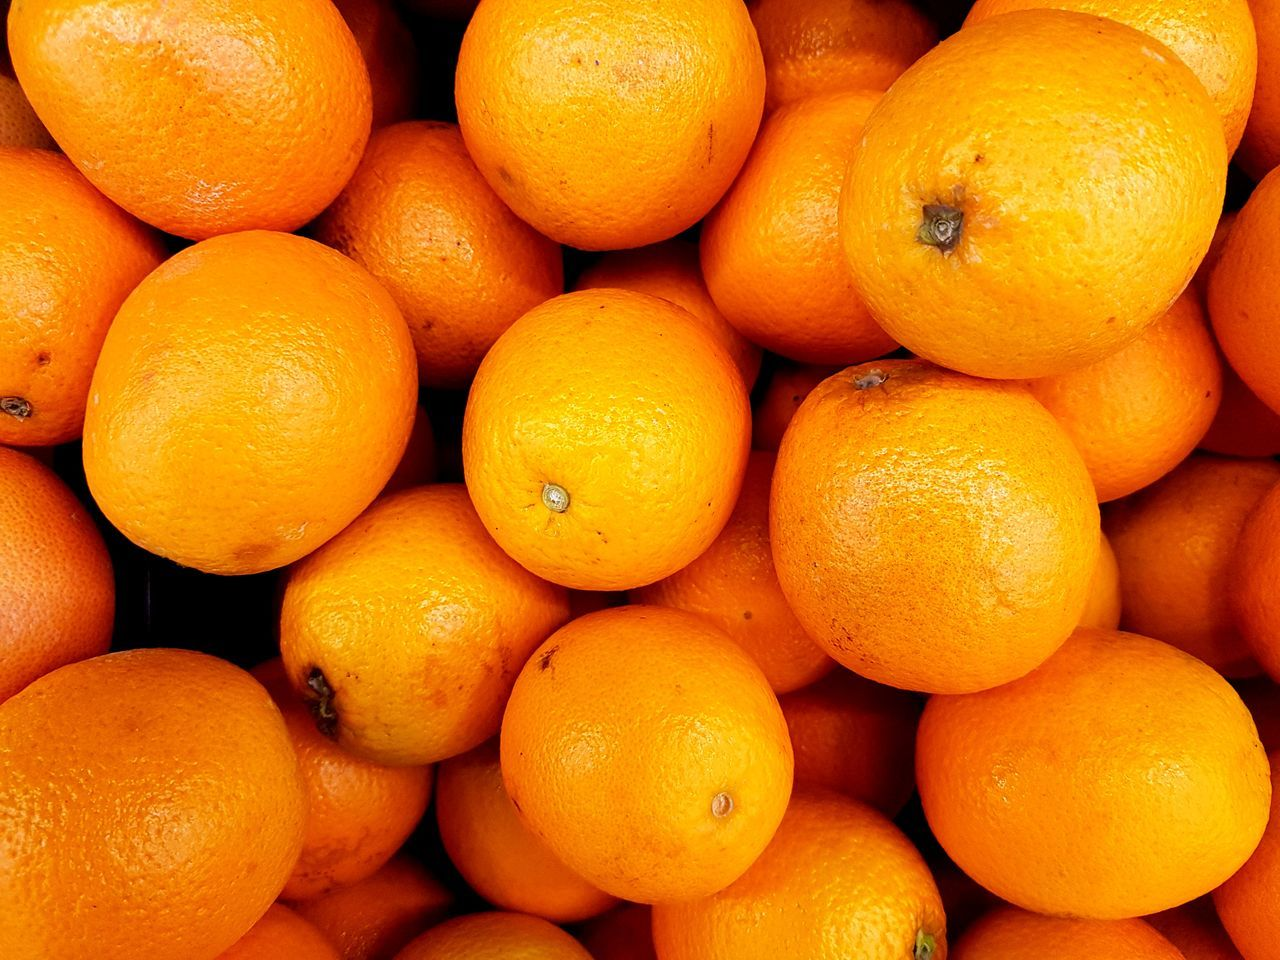 Fruit Citrus Fruit Healthy Eating Orange - Fruit Freshness Food And Drink Organic Orange Color Backgrounds Food Full Frame Healthy Lifestyle Large Group Of Objects Vitamin Market Close-up Nature Still Life Plants Agricultural Agriculture Agronomy Oranges